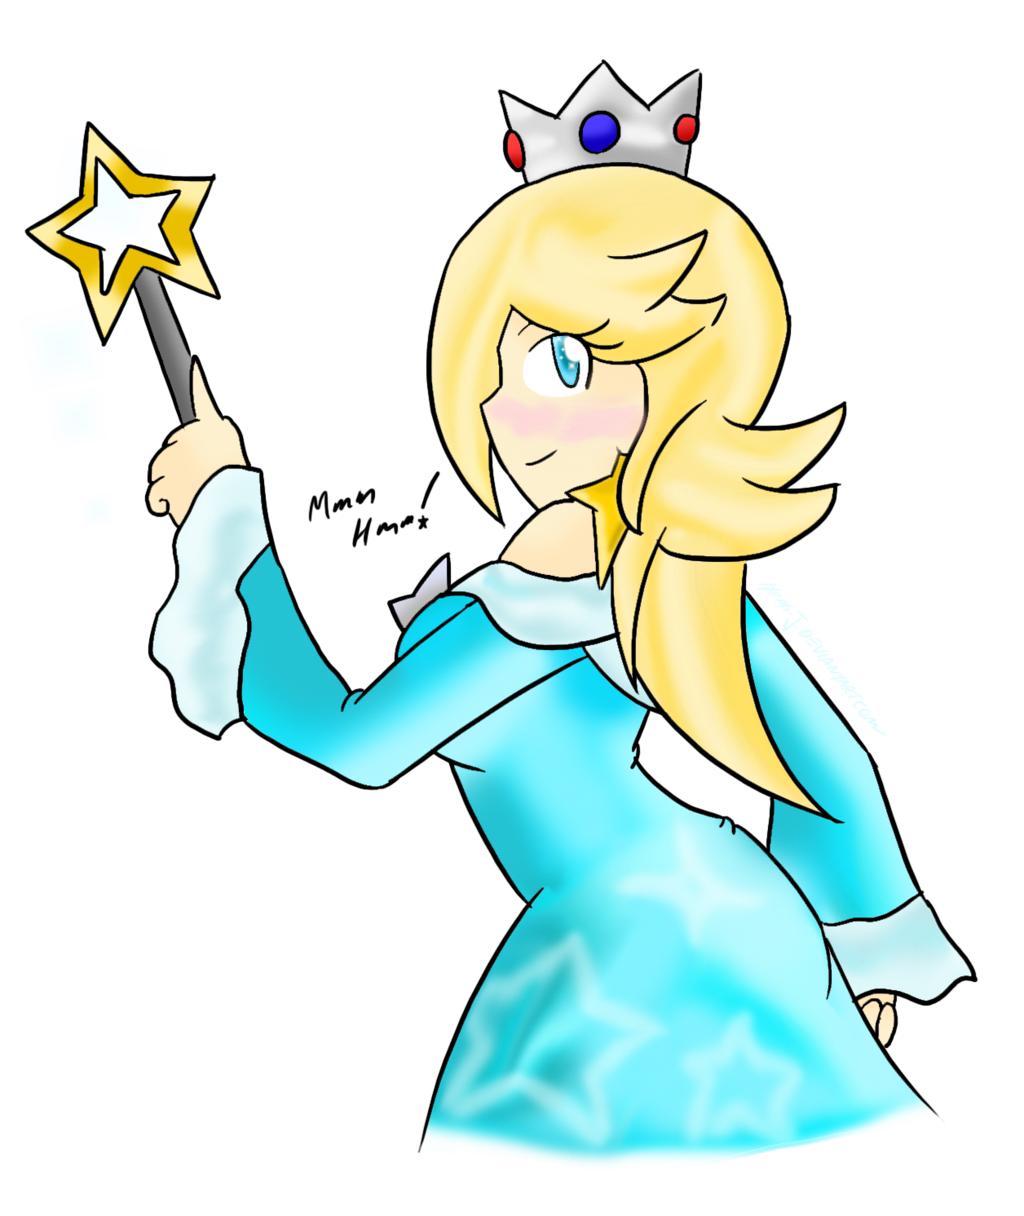 Rosalina drawing outline. S side taunt by